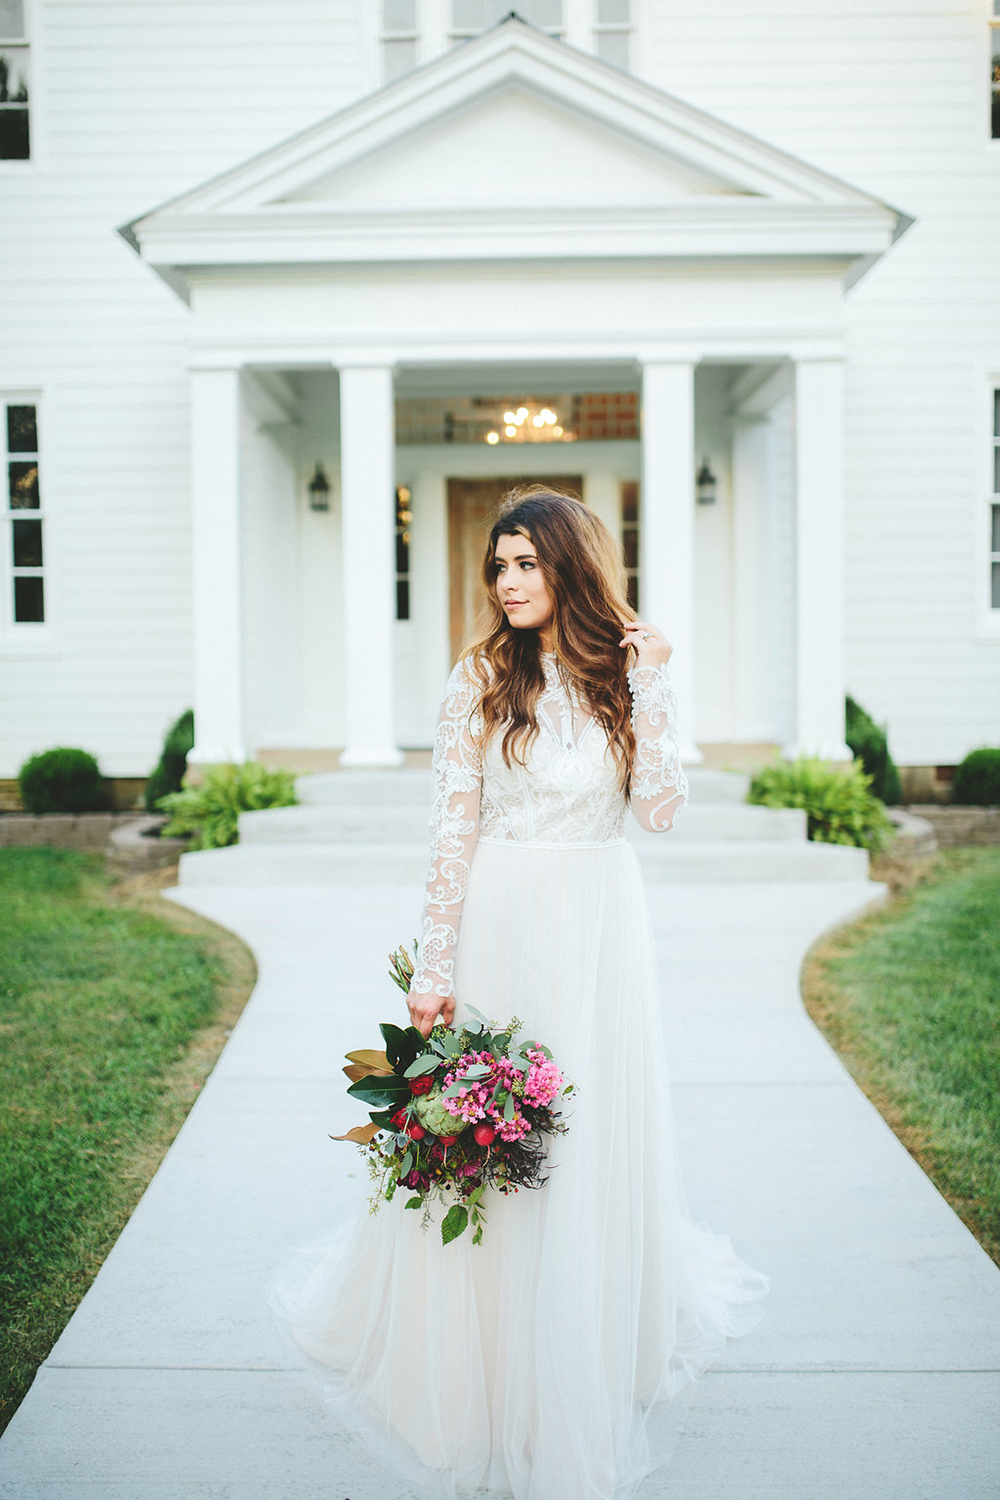 romantic bridal portraits - photo by Shots by Cheyenne http://ruffledblog.com/farm-to-table-wedding-inspiration-in-nashville